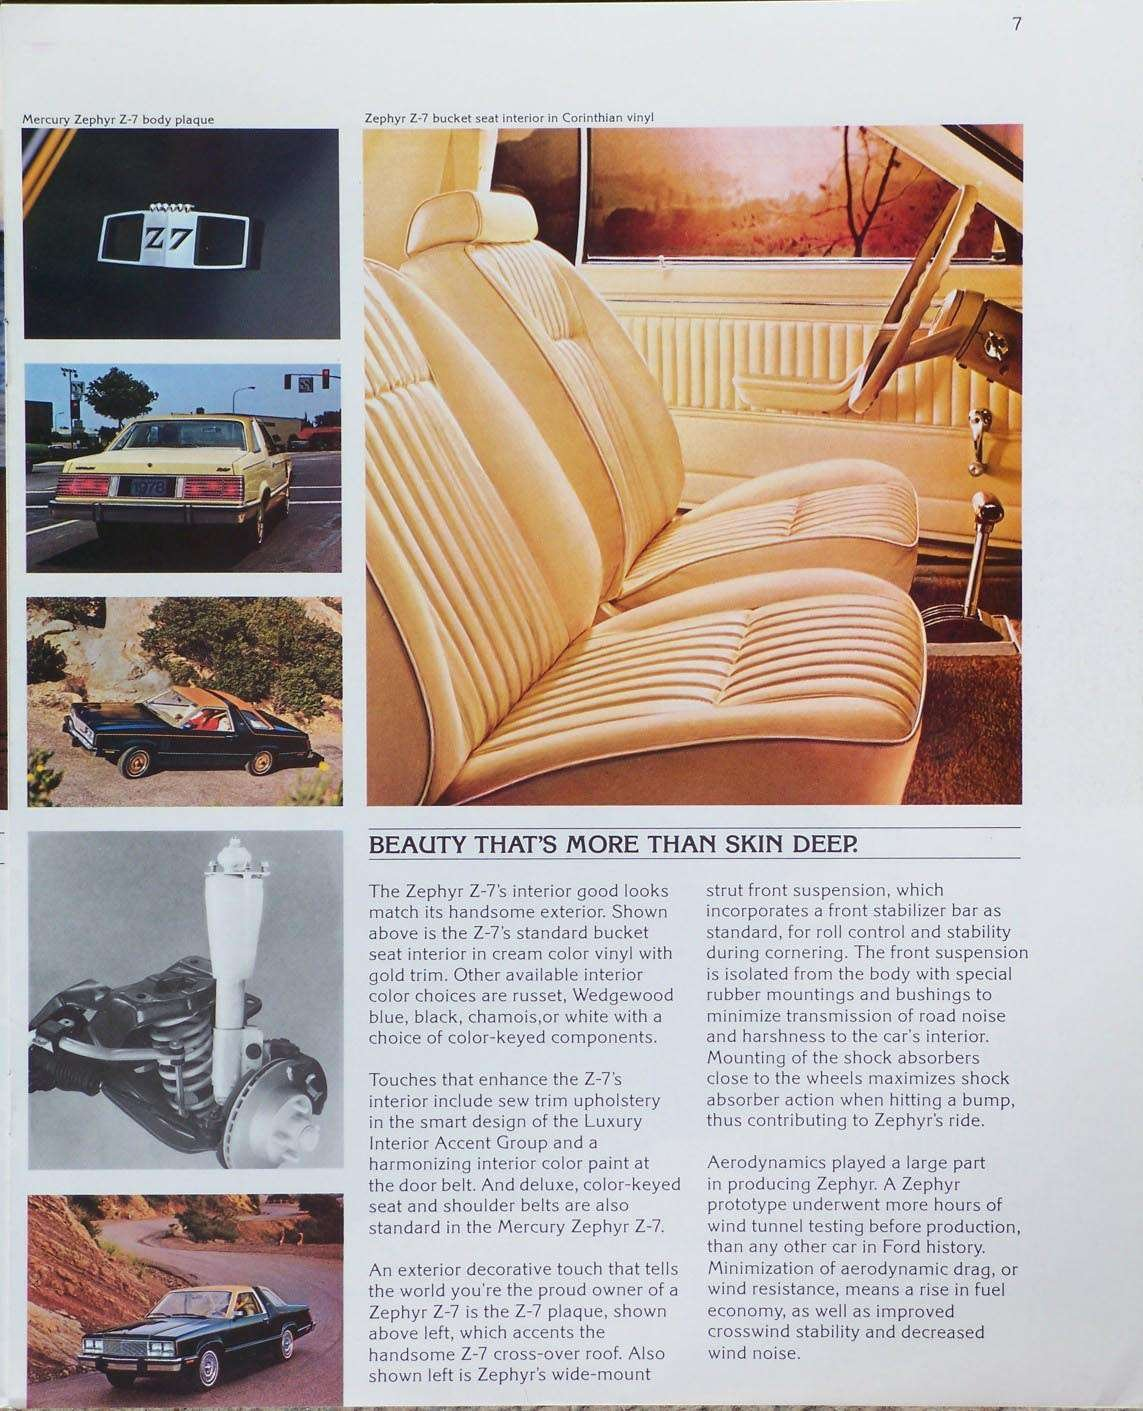 Amazon.com : 1978 MERCURY ZEPHYR VINTAGE COLOR SALES BROCHURE - 78-204R (REVISED) - EXCELLENT ORIGINAL - USA!! : Other Products : Everything Else